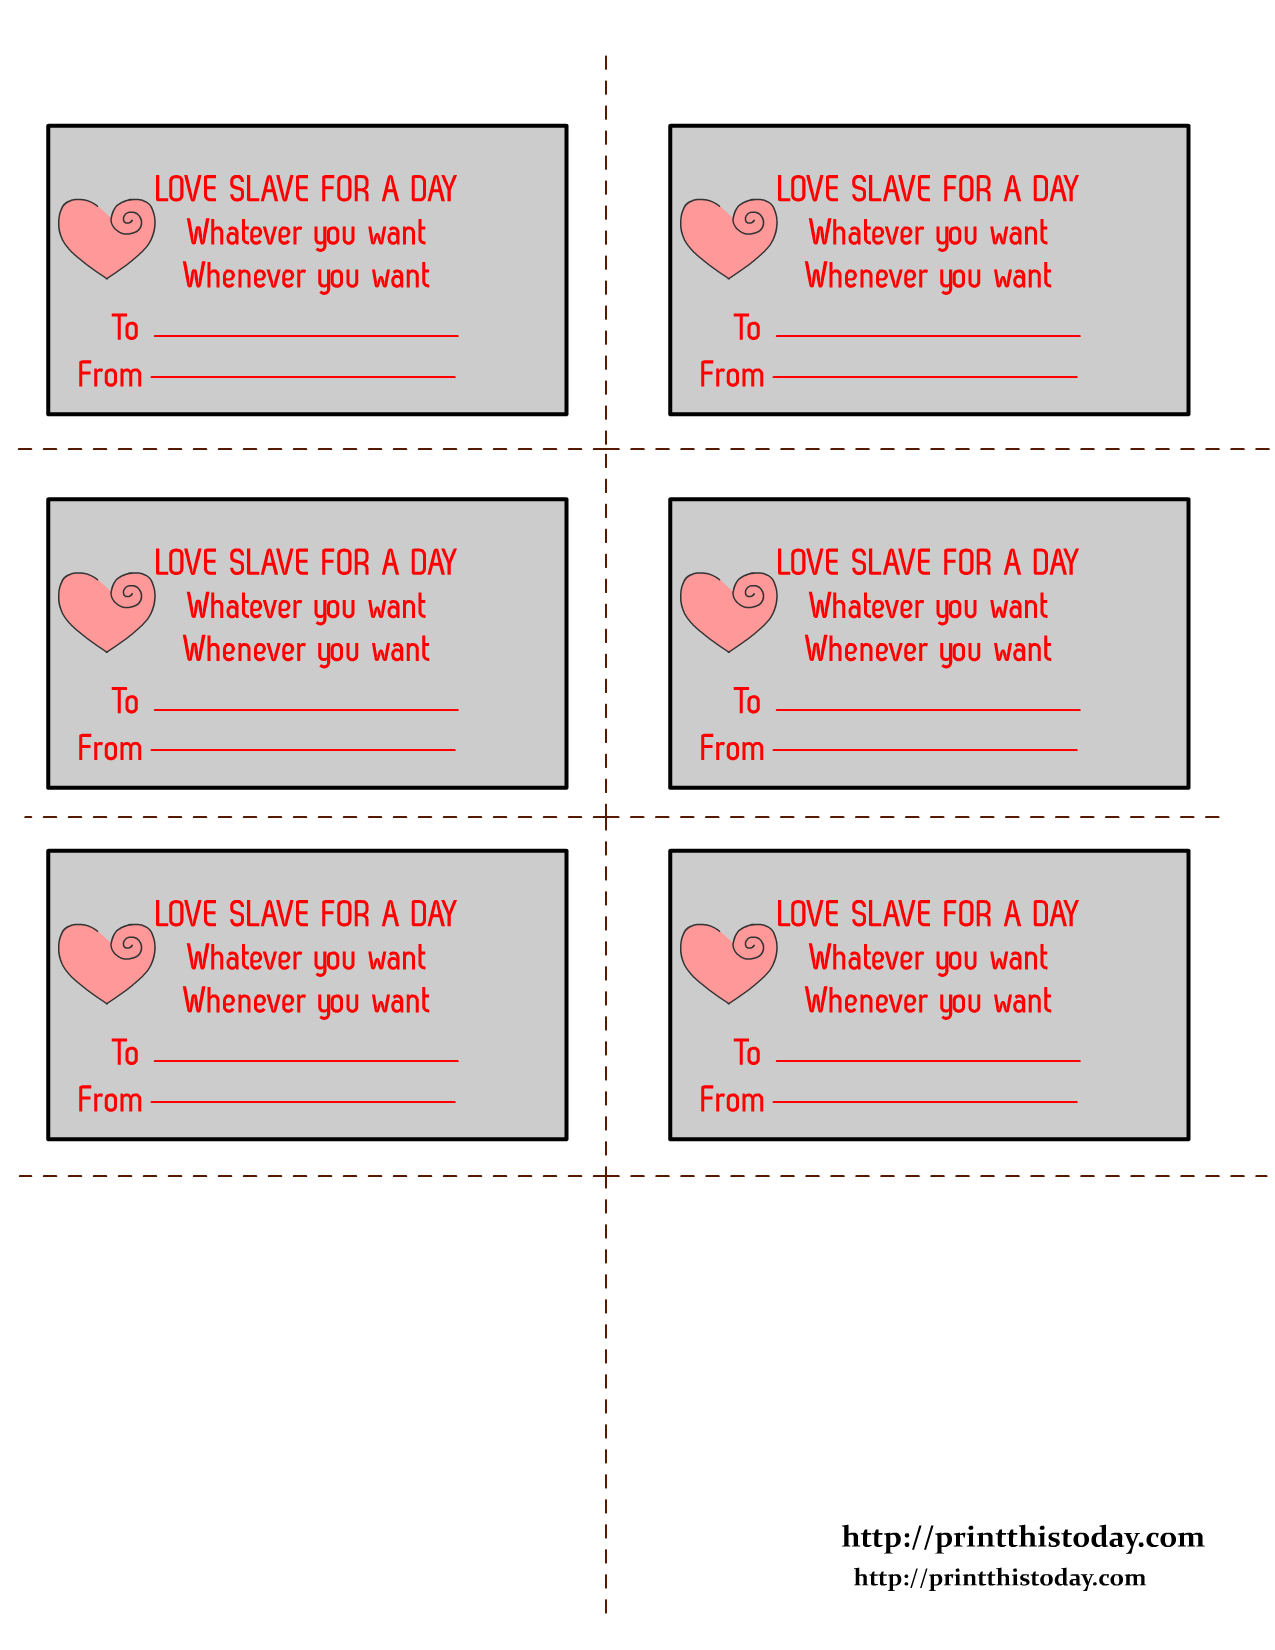 Free Printable Love Coupons For Candlelit Bath | Free Printables For - Free Printable Kinky Coupons For Him